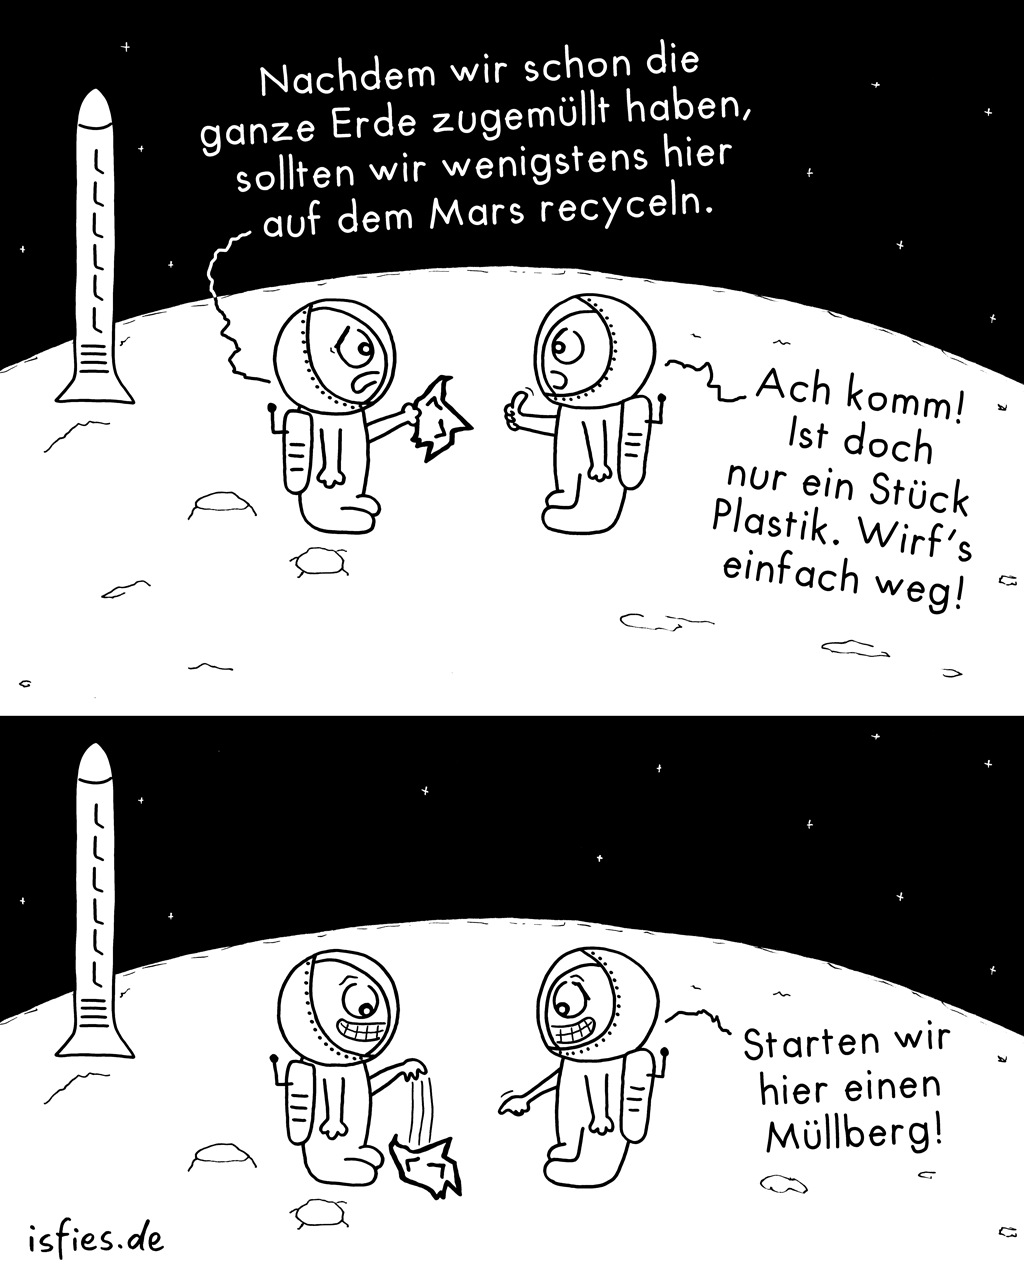 Marsmission | Is fies!